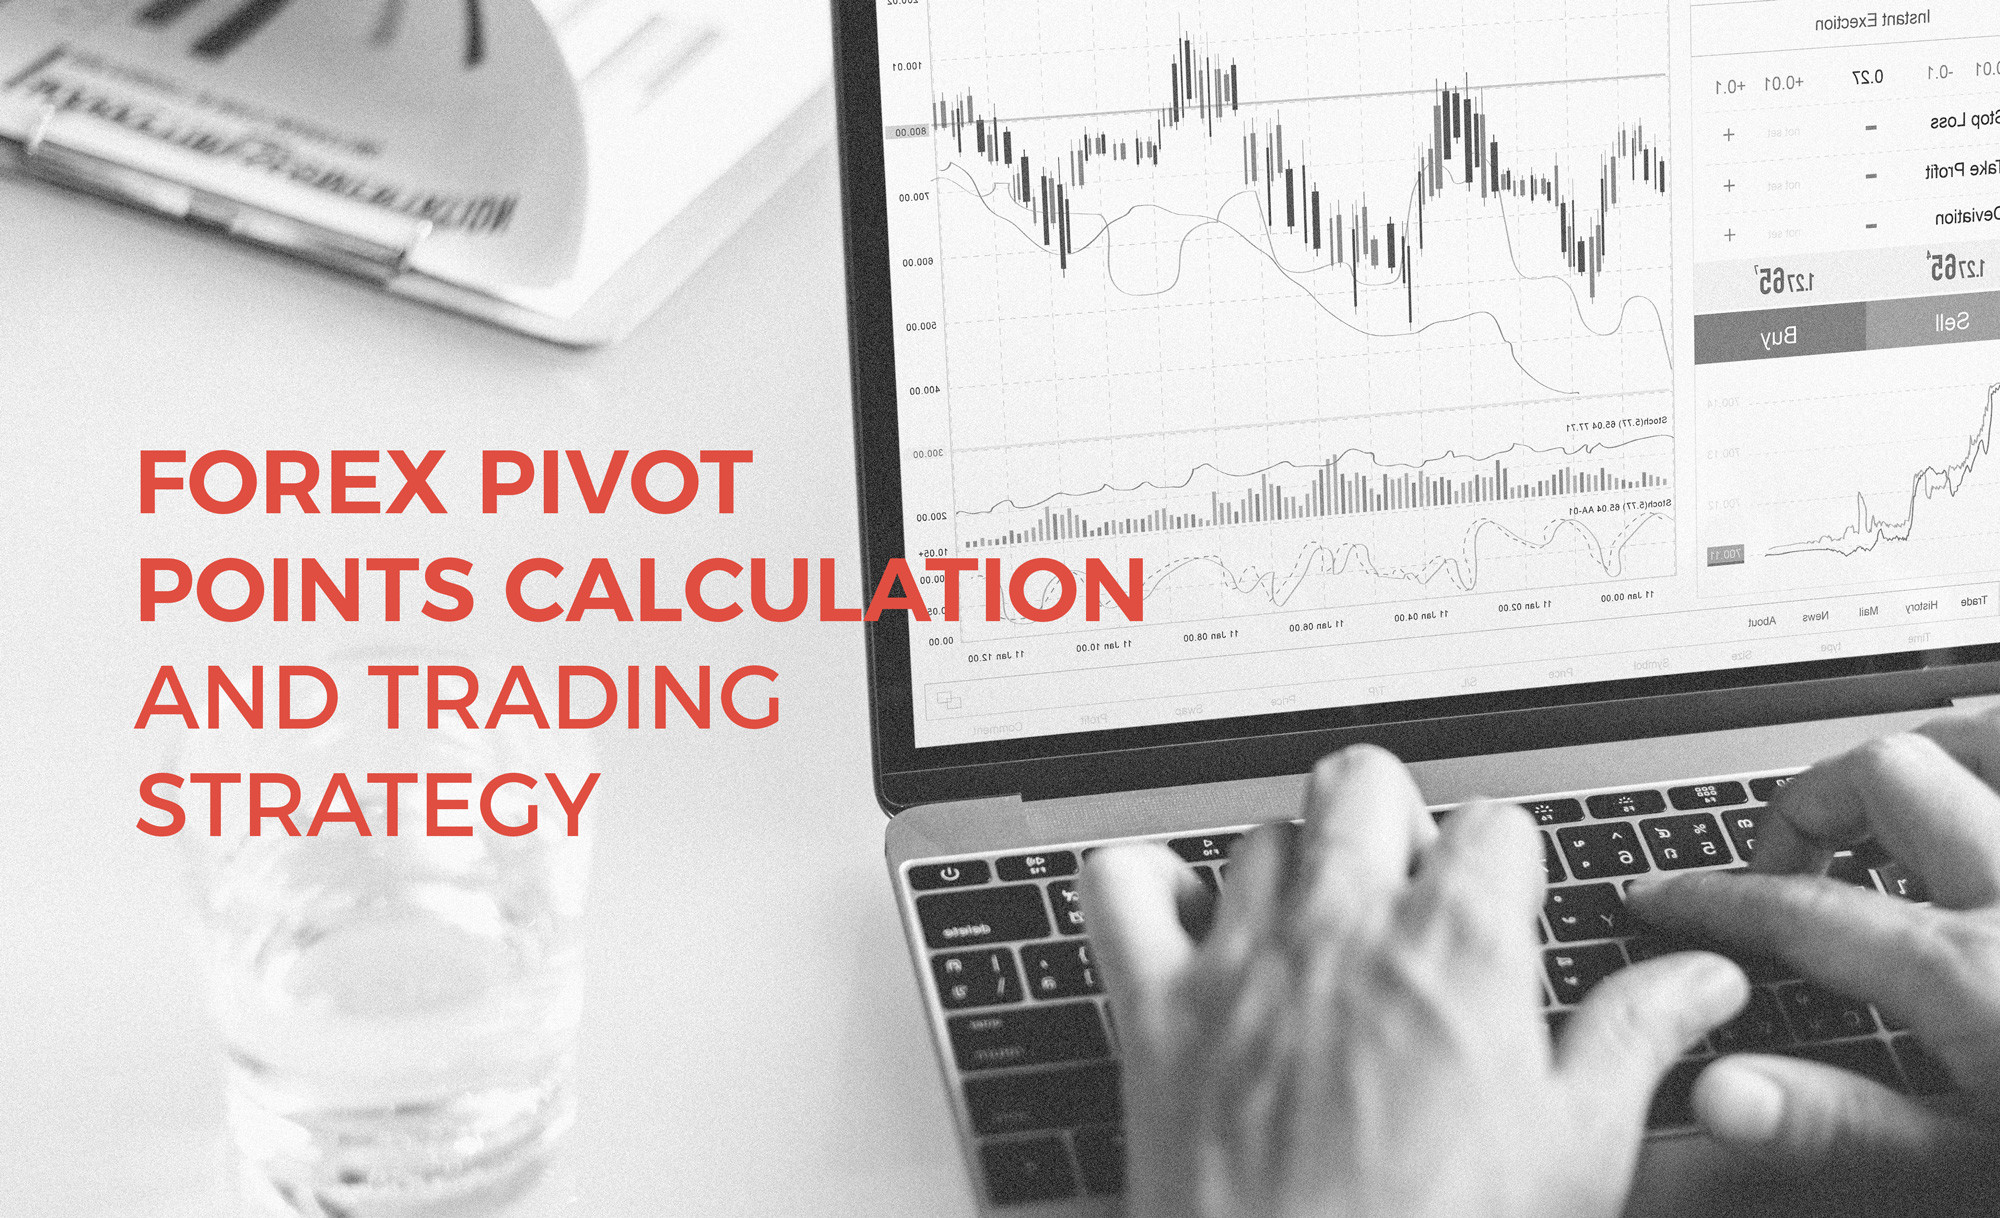 Forex Pivot Points Calculation and Trading Strategy